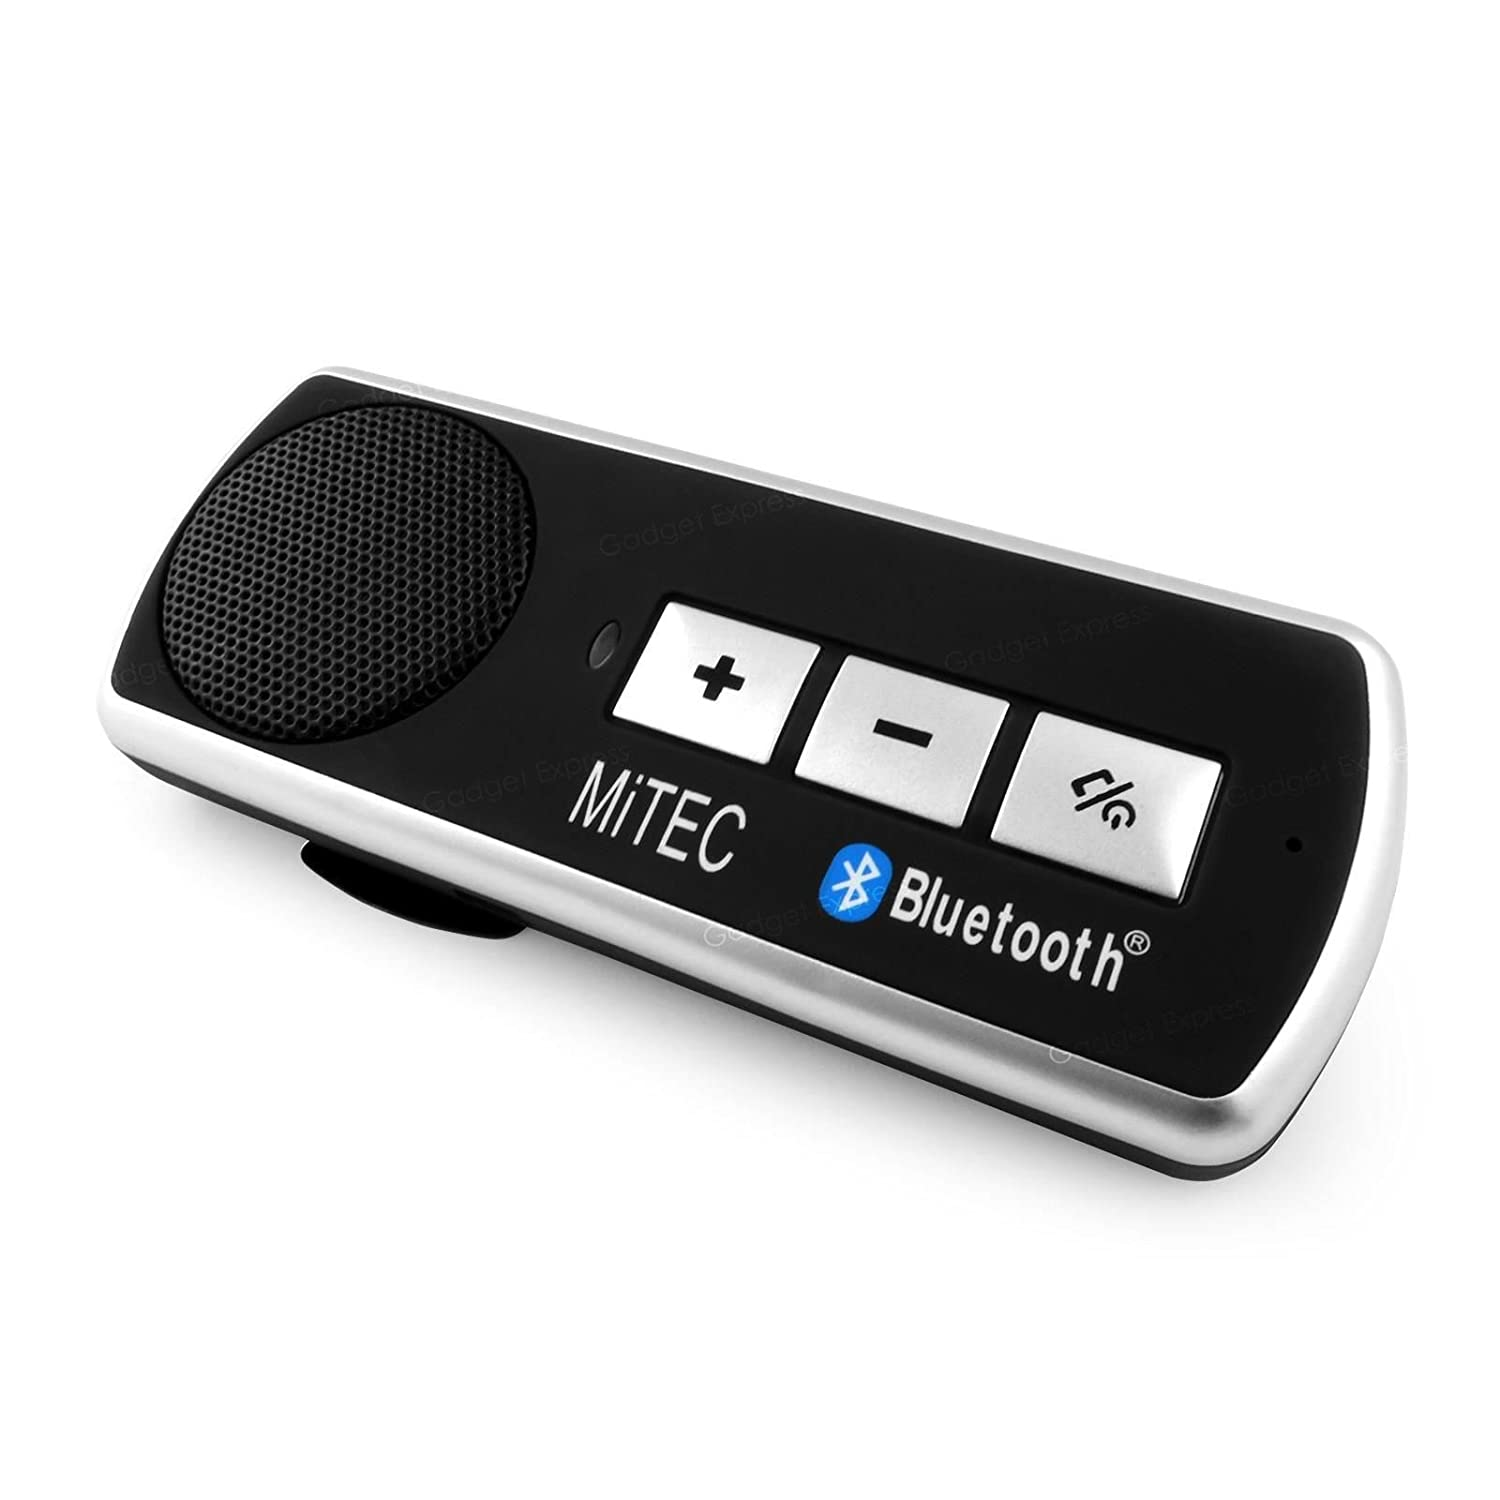 Mitec bluetooth handsfree sun visor car kit speakerphone with multipoint for all mobile phones iphone 5 6 galaxy s5 s6 note xperia htc lg amazon co uk